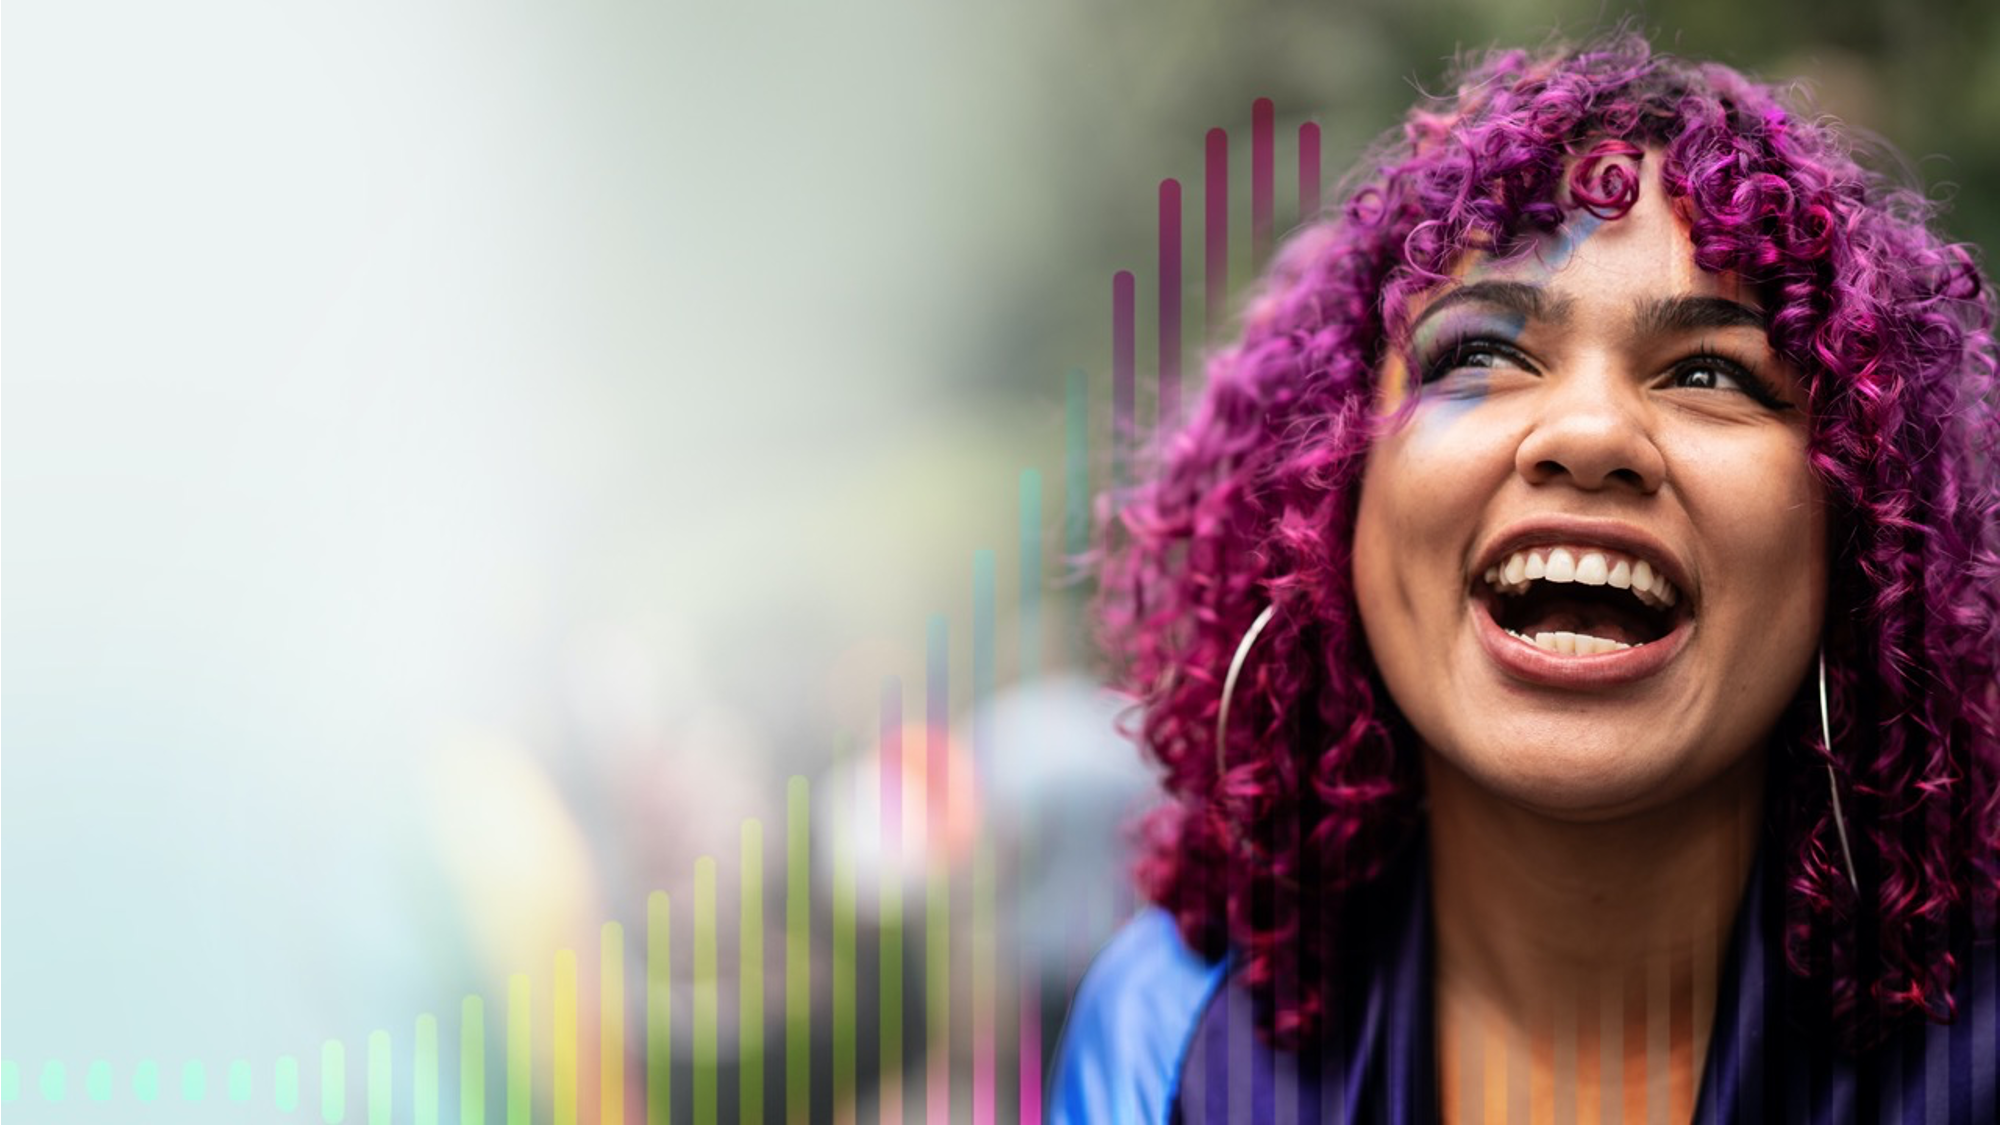 woman with purple hair laughing